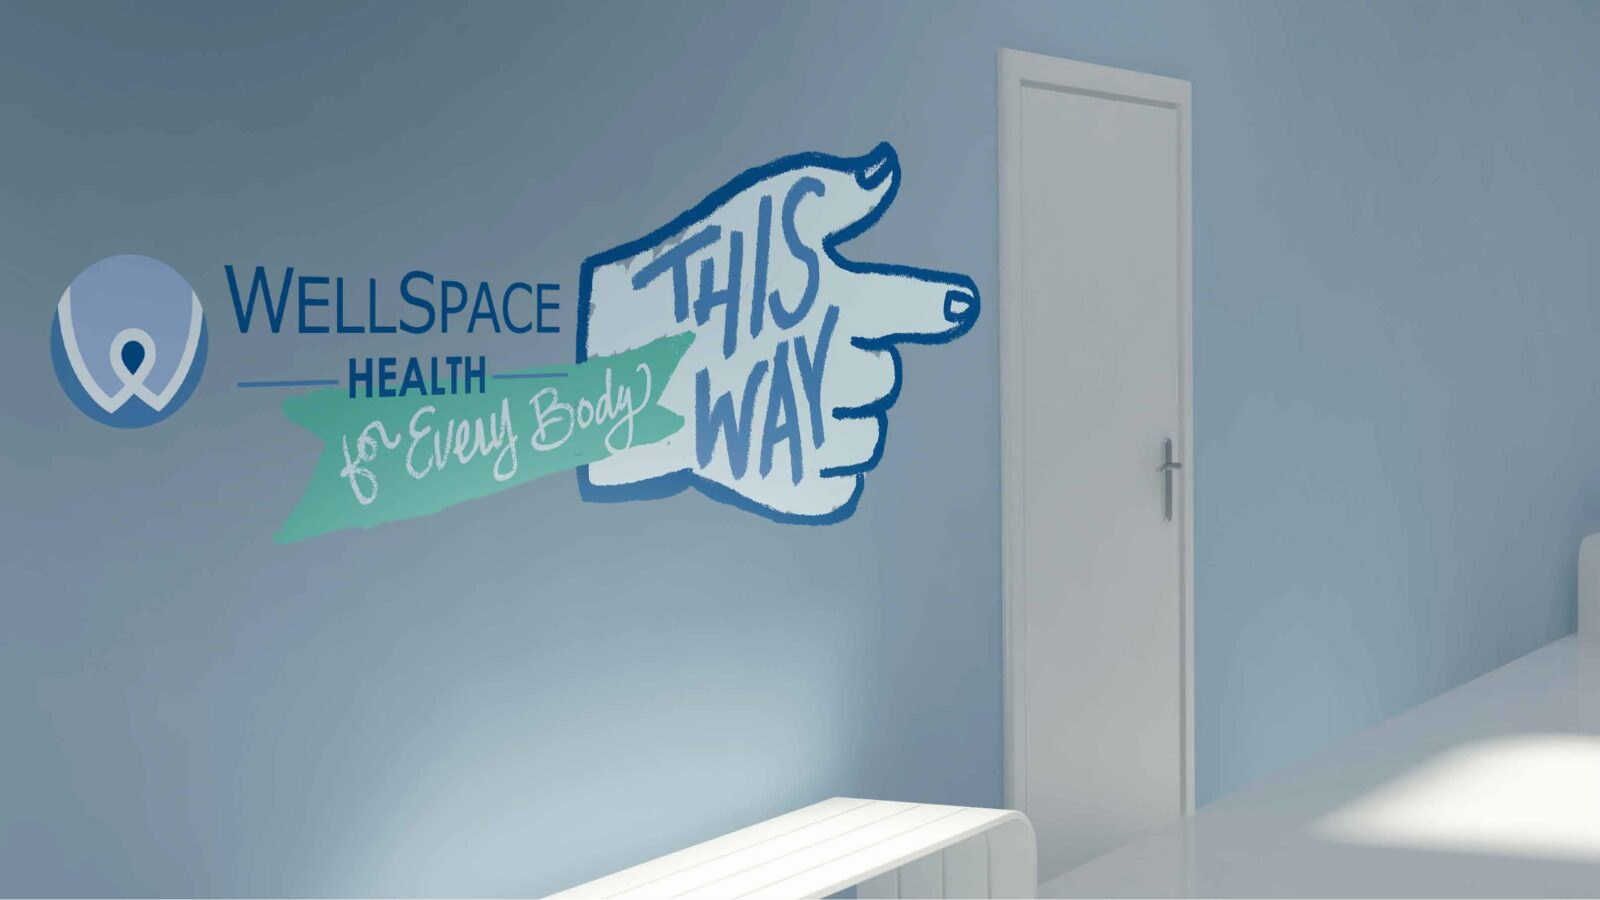 Wellspace Health For Every Body